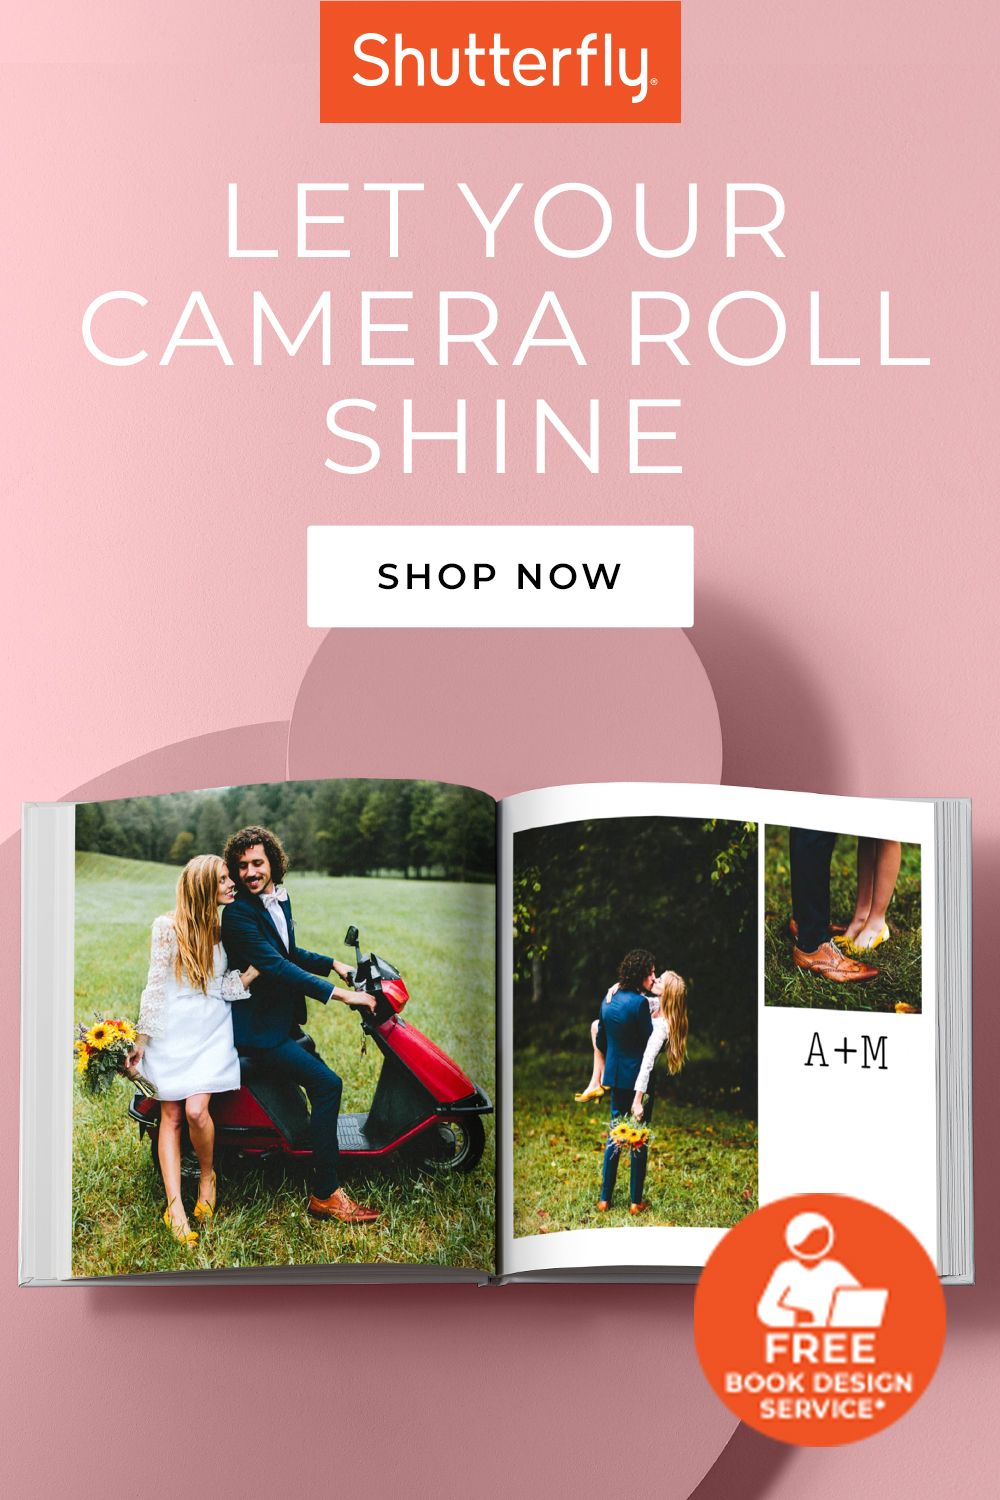 9d564a4ce0e2f8d54a4284dbb7ee909d - How Long Does It Take To Get Your Shutterfly Book